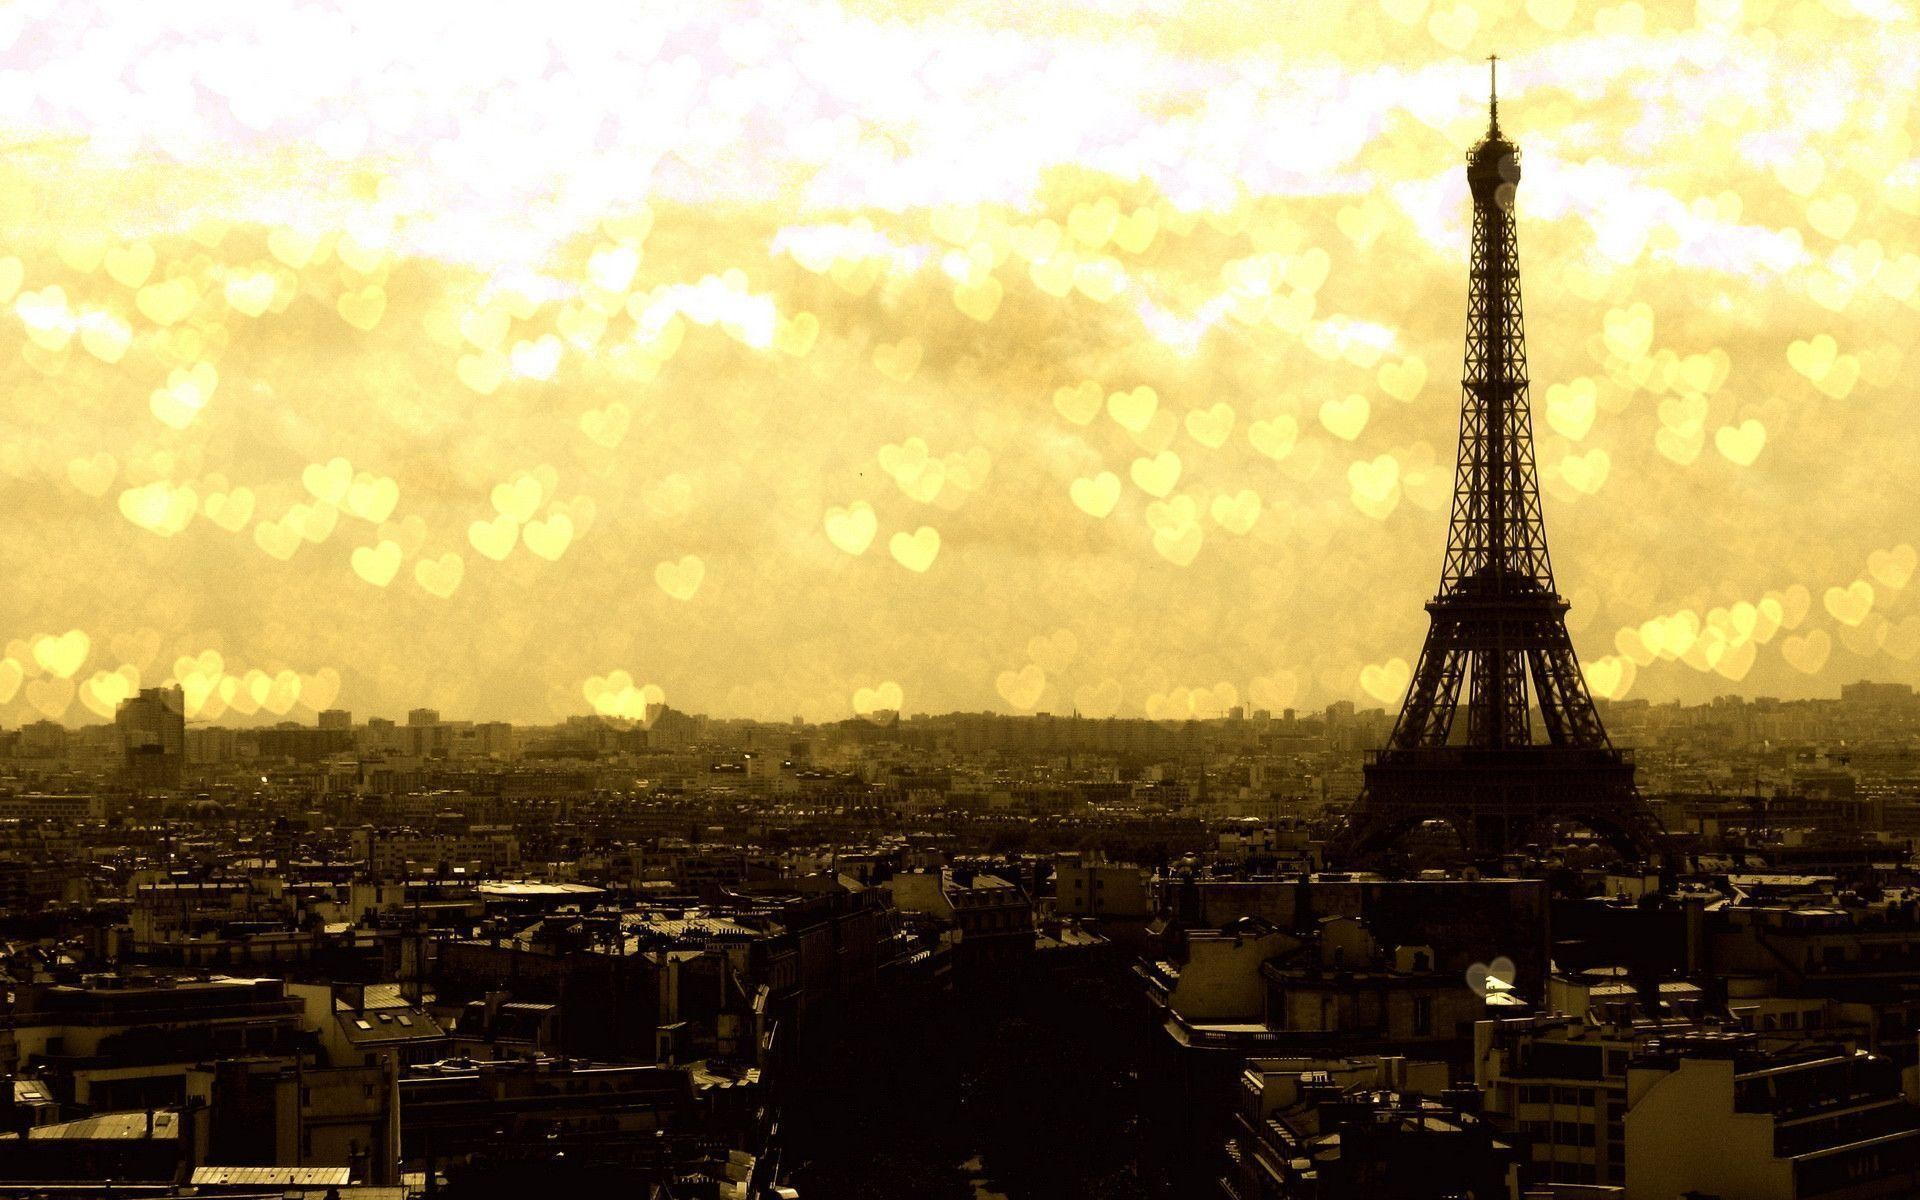 1920x1200 Eiffel Tower wallpapers | Eiffel Tower background